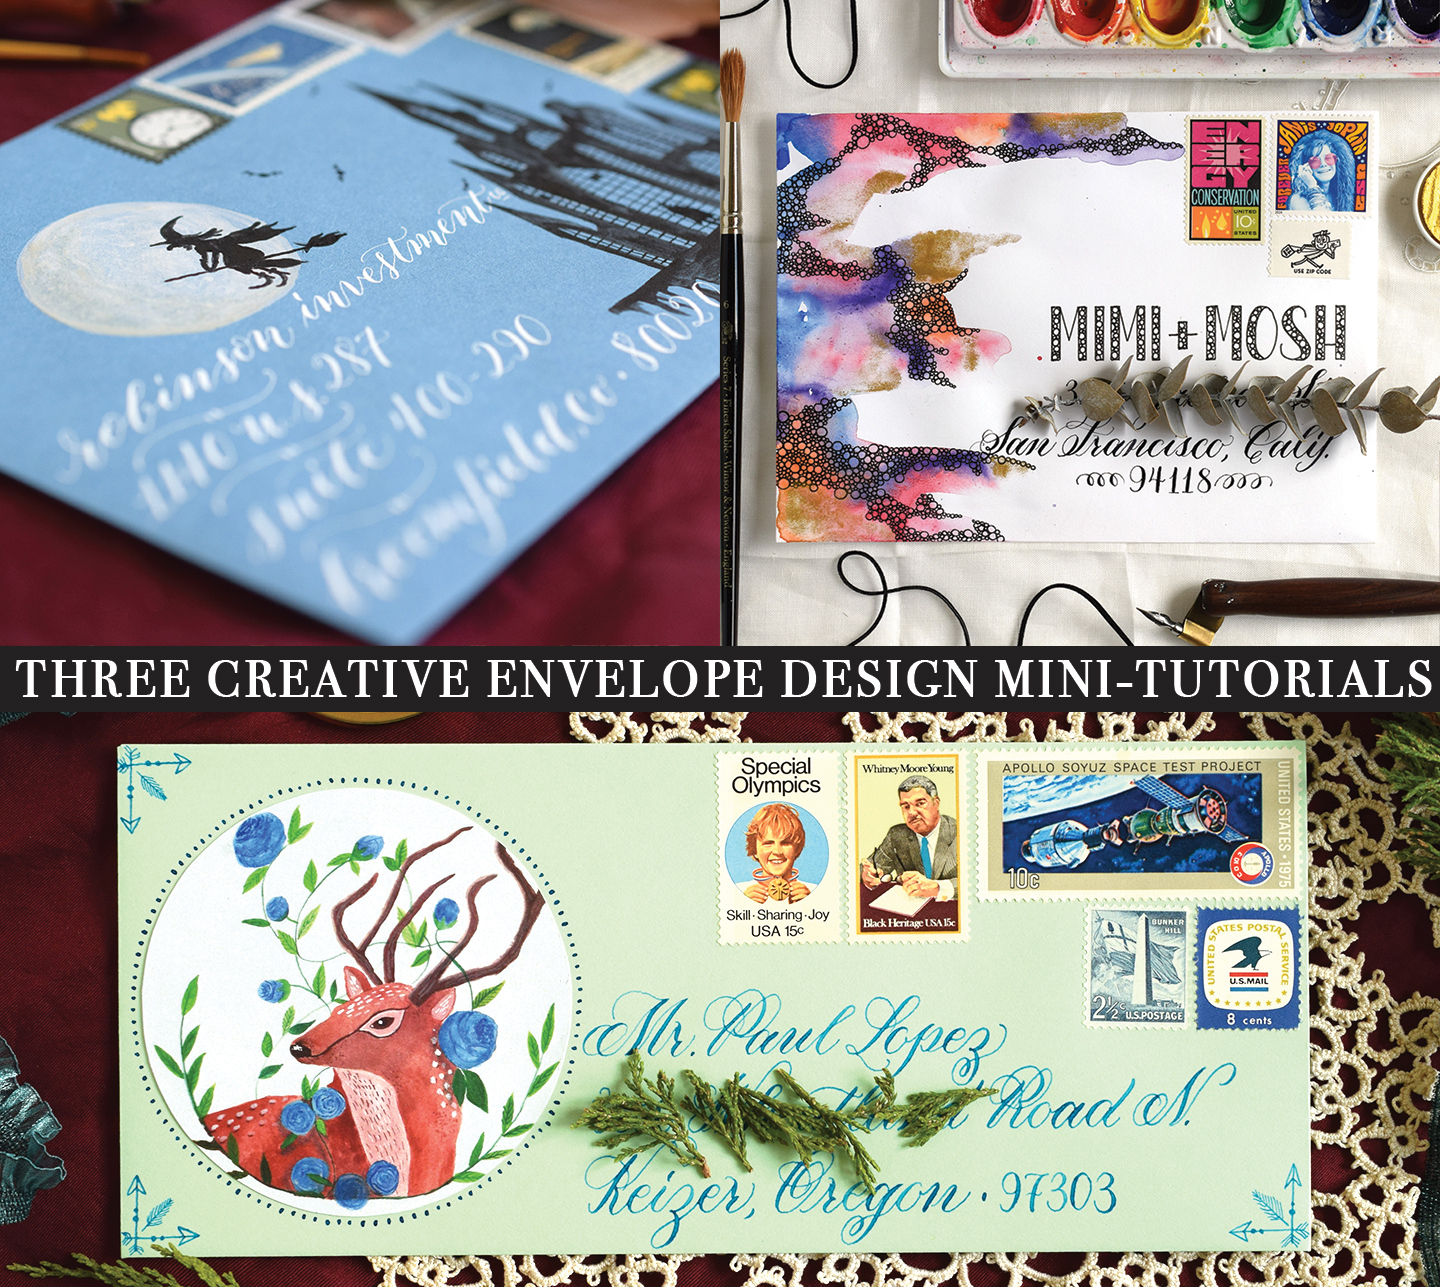 Three Creative Envelope Design Mini-Tutorials